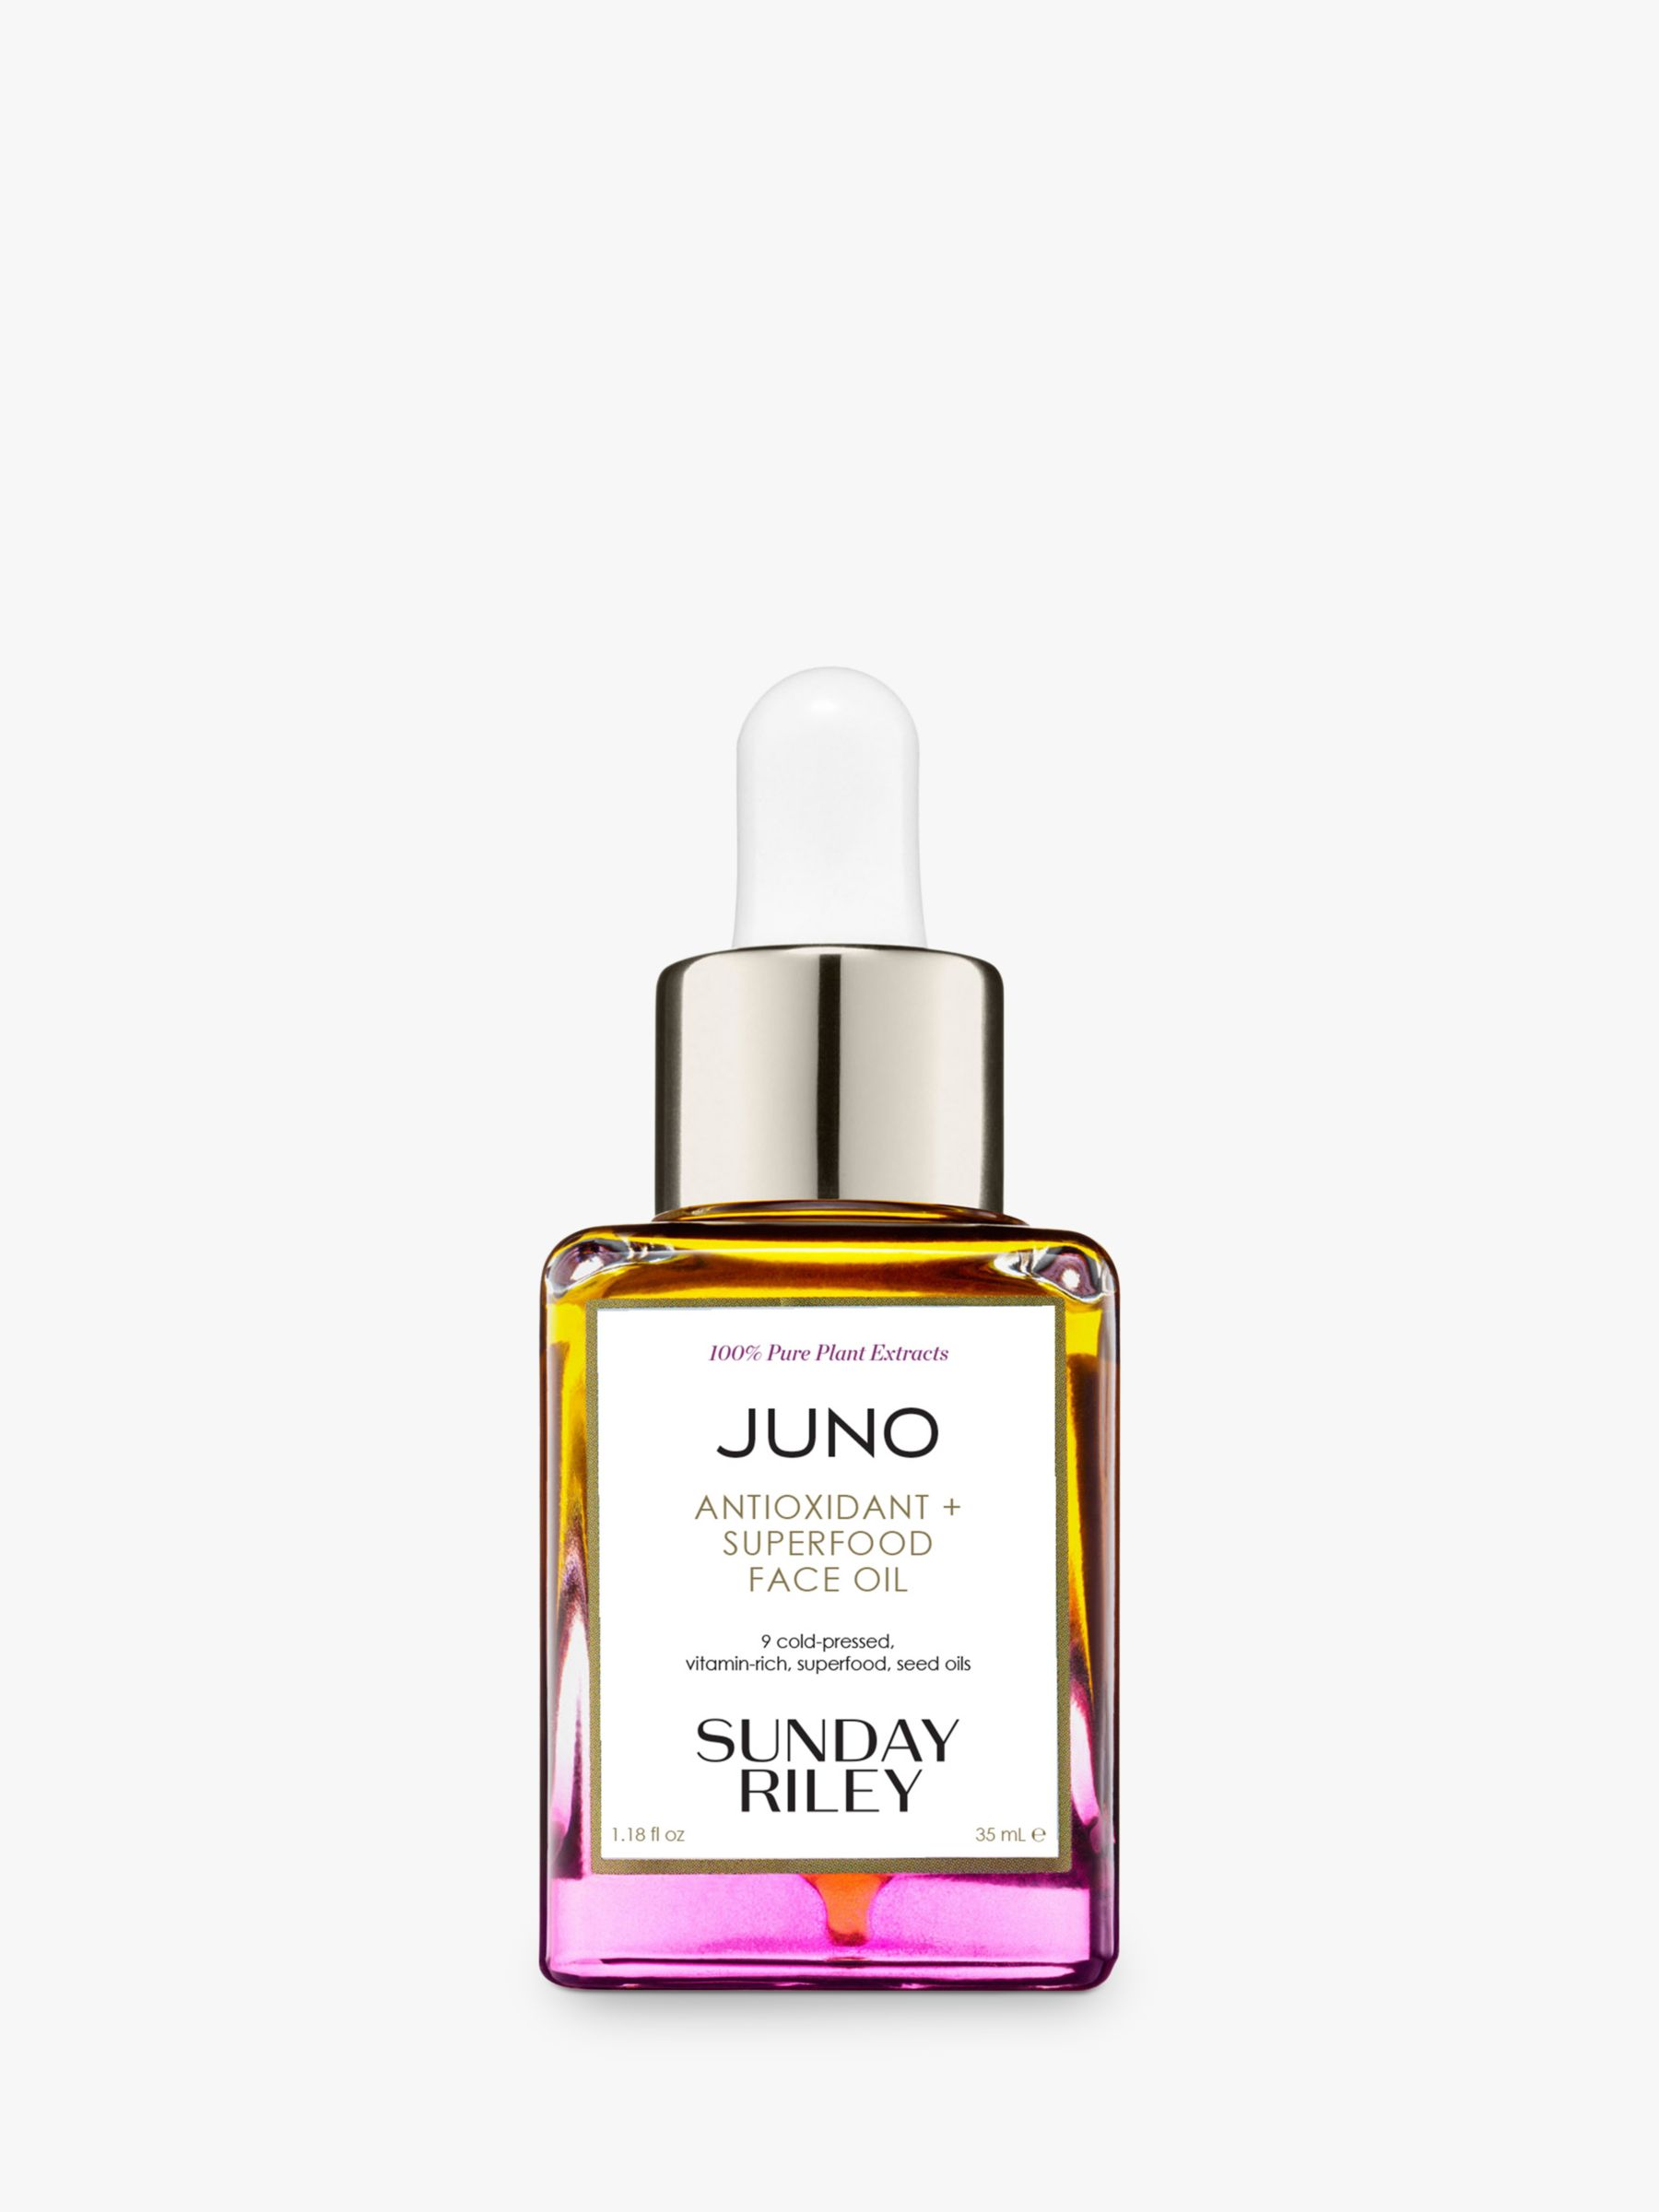 Buy Sunday Riley Juno Antioxidant + Superfood Face Oil, 35ml Online at www.retrievedmagnetic.com